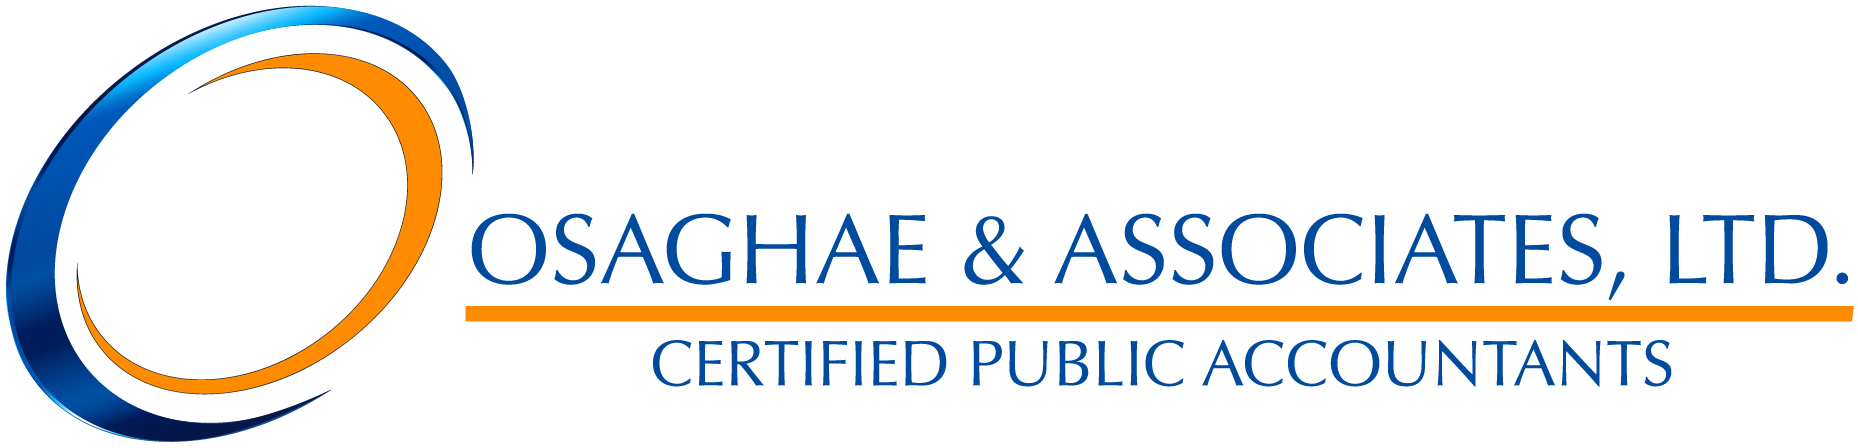 Chicago, Illinois Accounting Firm | State Tax Forms Page | Osaghae & Associates, Ltd.